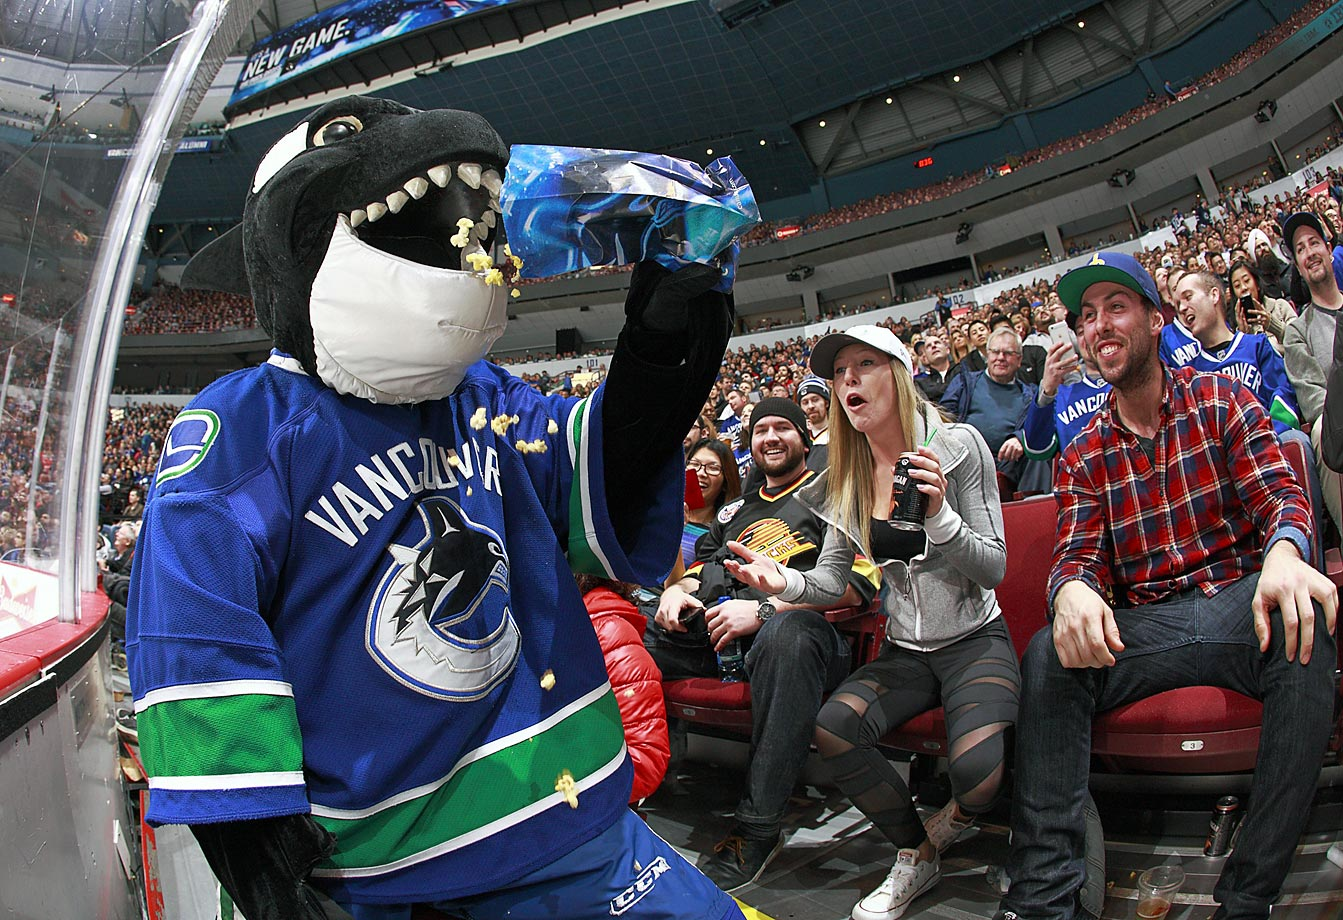 Vancouver Canucks' mascot Fin feasts on some popcorn during a game against the Winnipeg Jets.